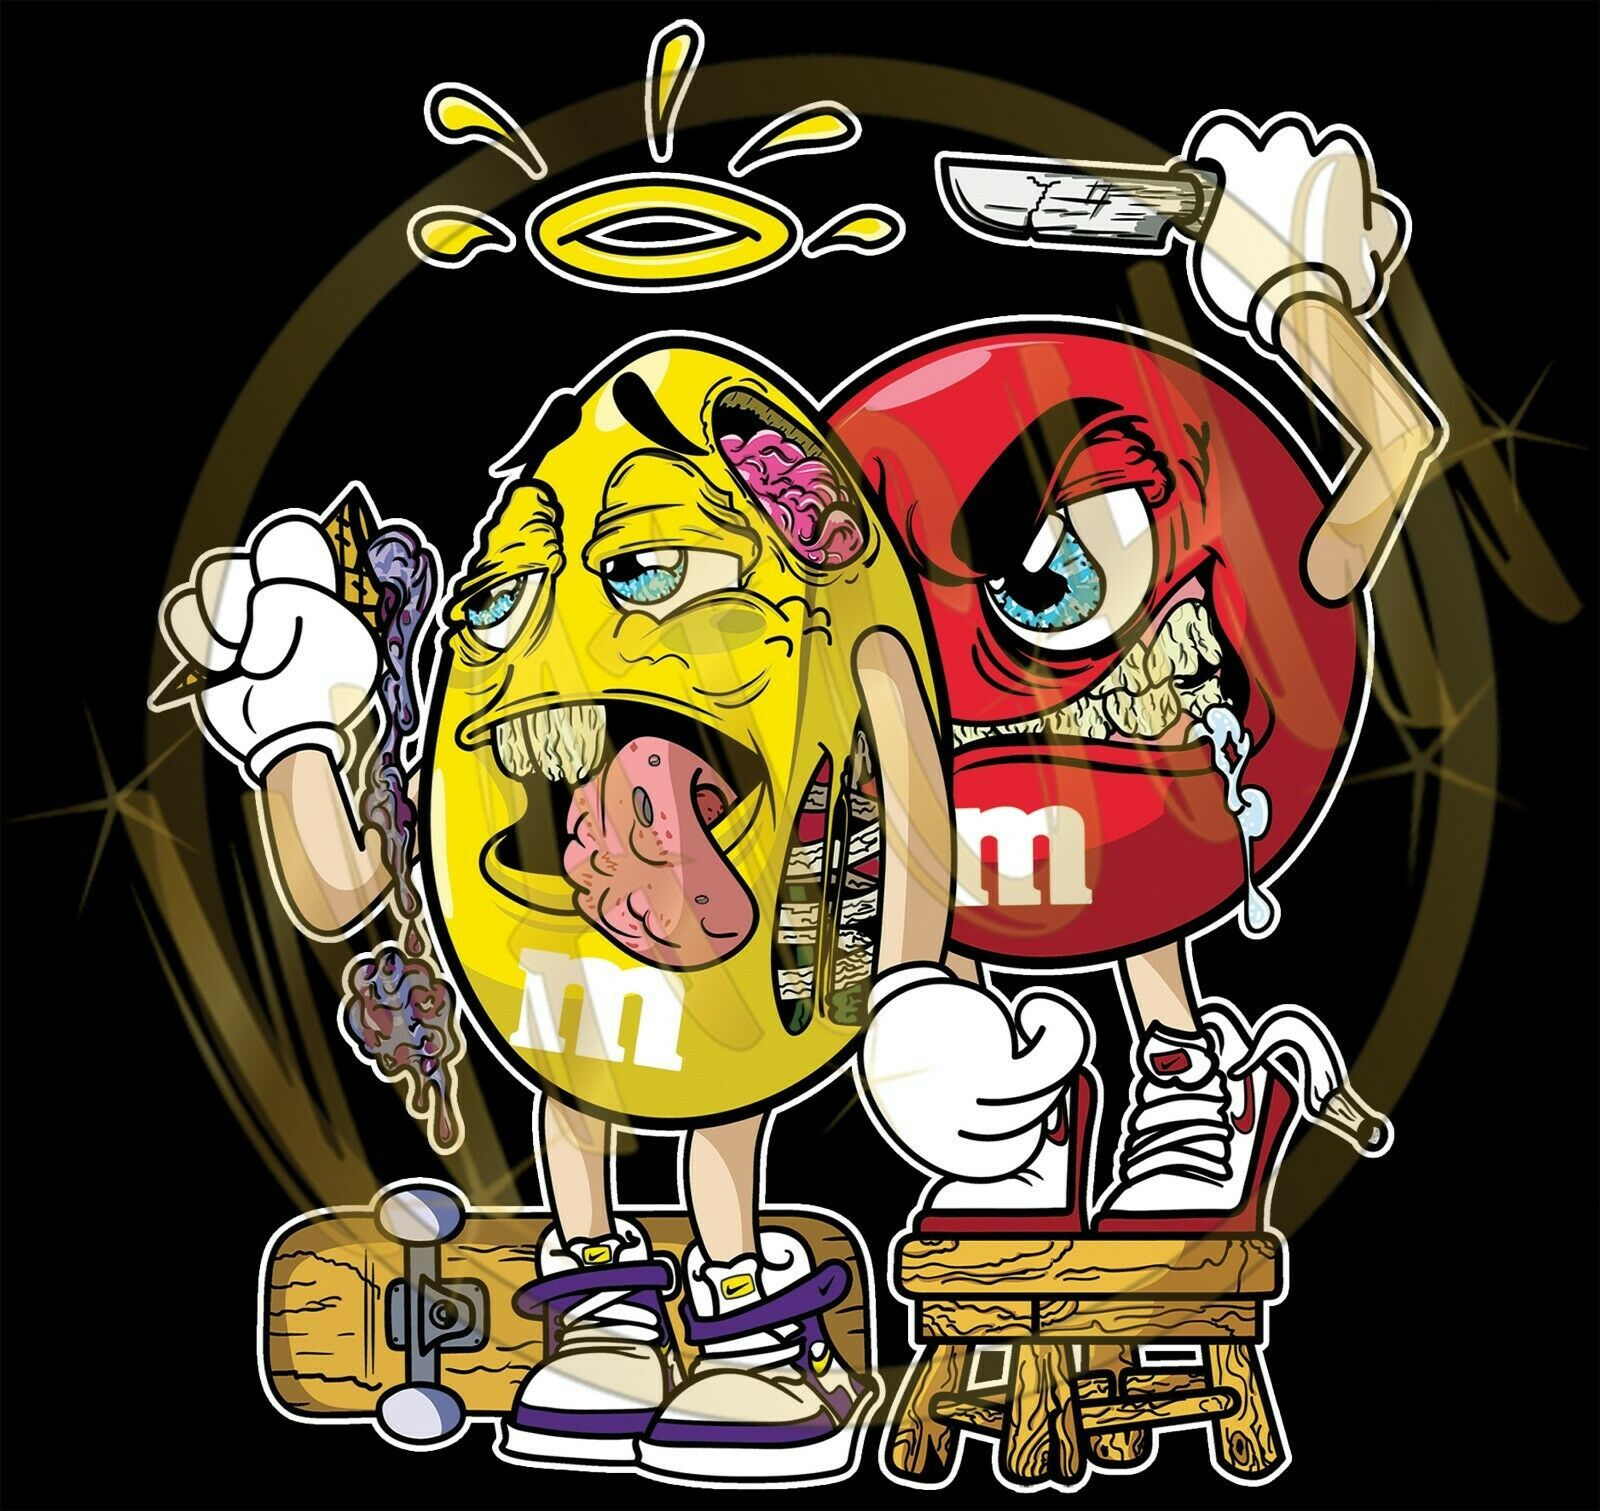 Primary image for M&M's Good Yellow and Evil Red M&M's Characters Image Men's T-Shirts